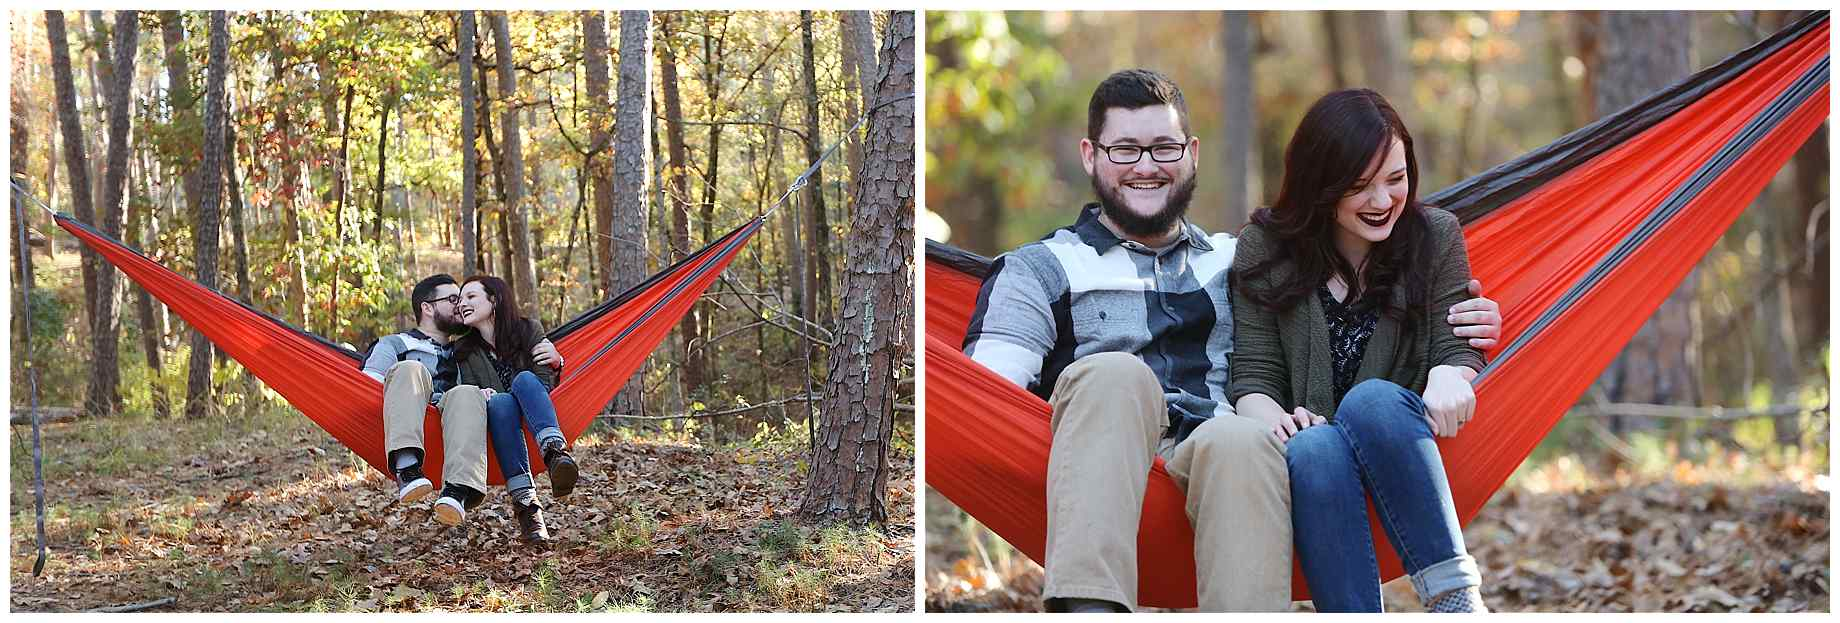 tyler-state-park-images-engagement-005